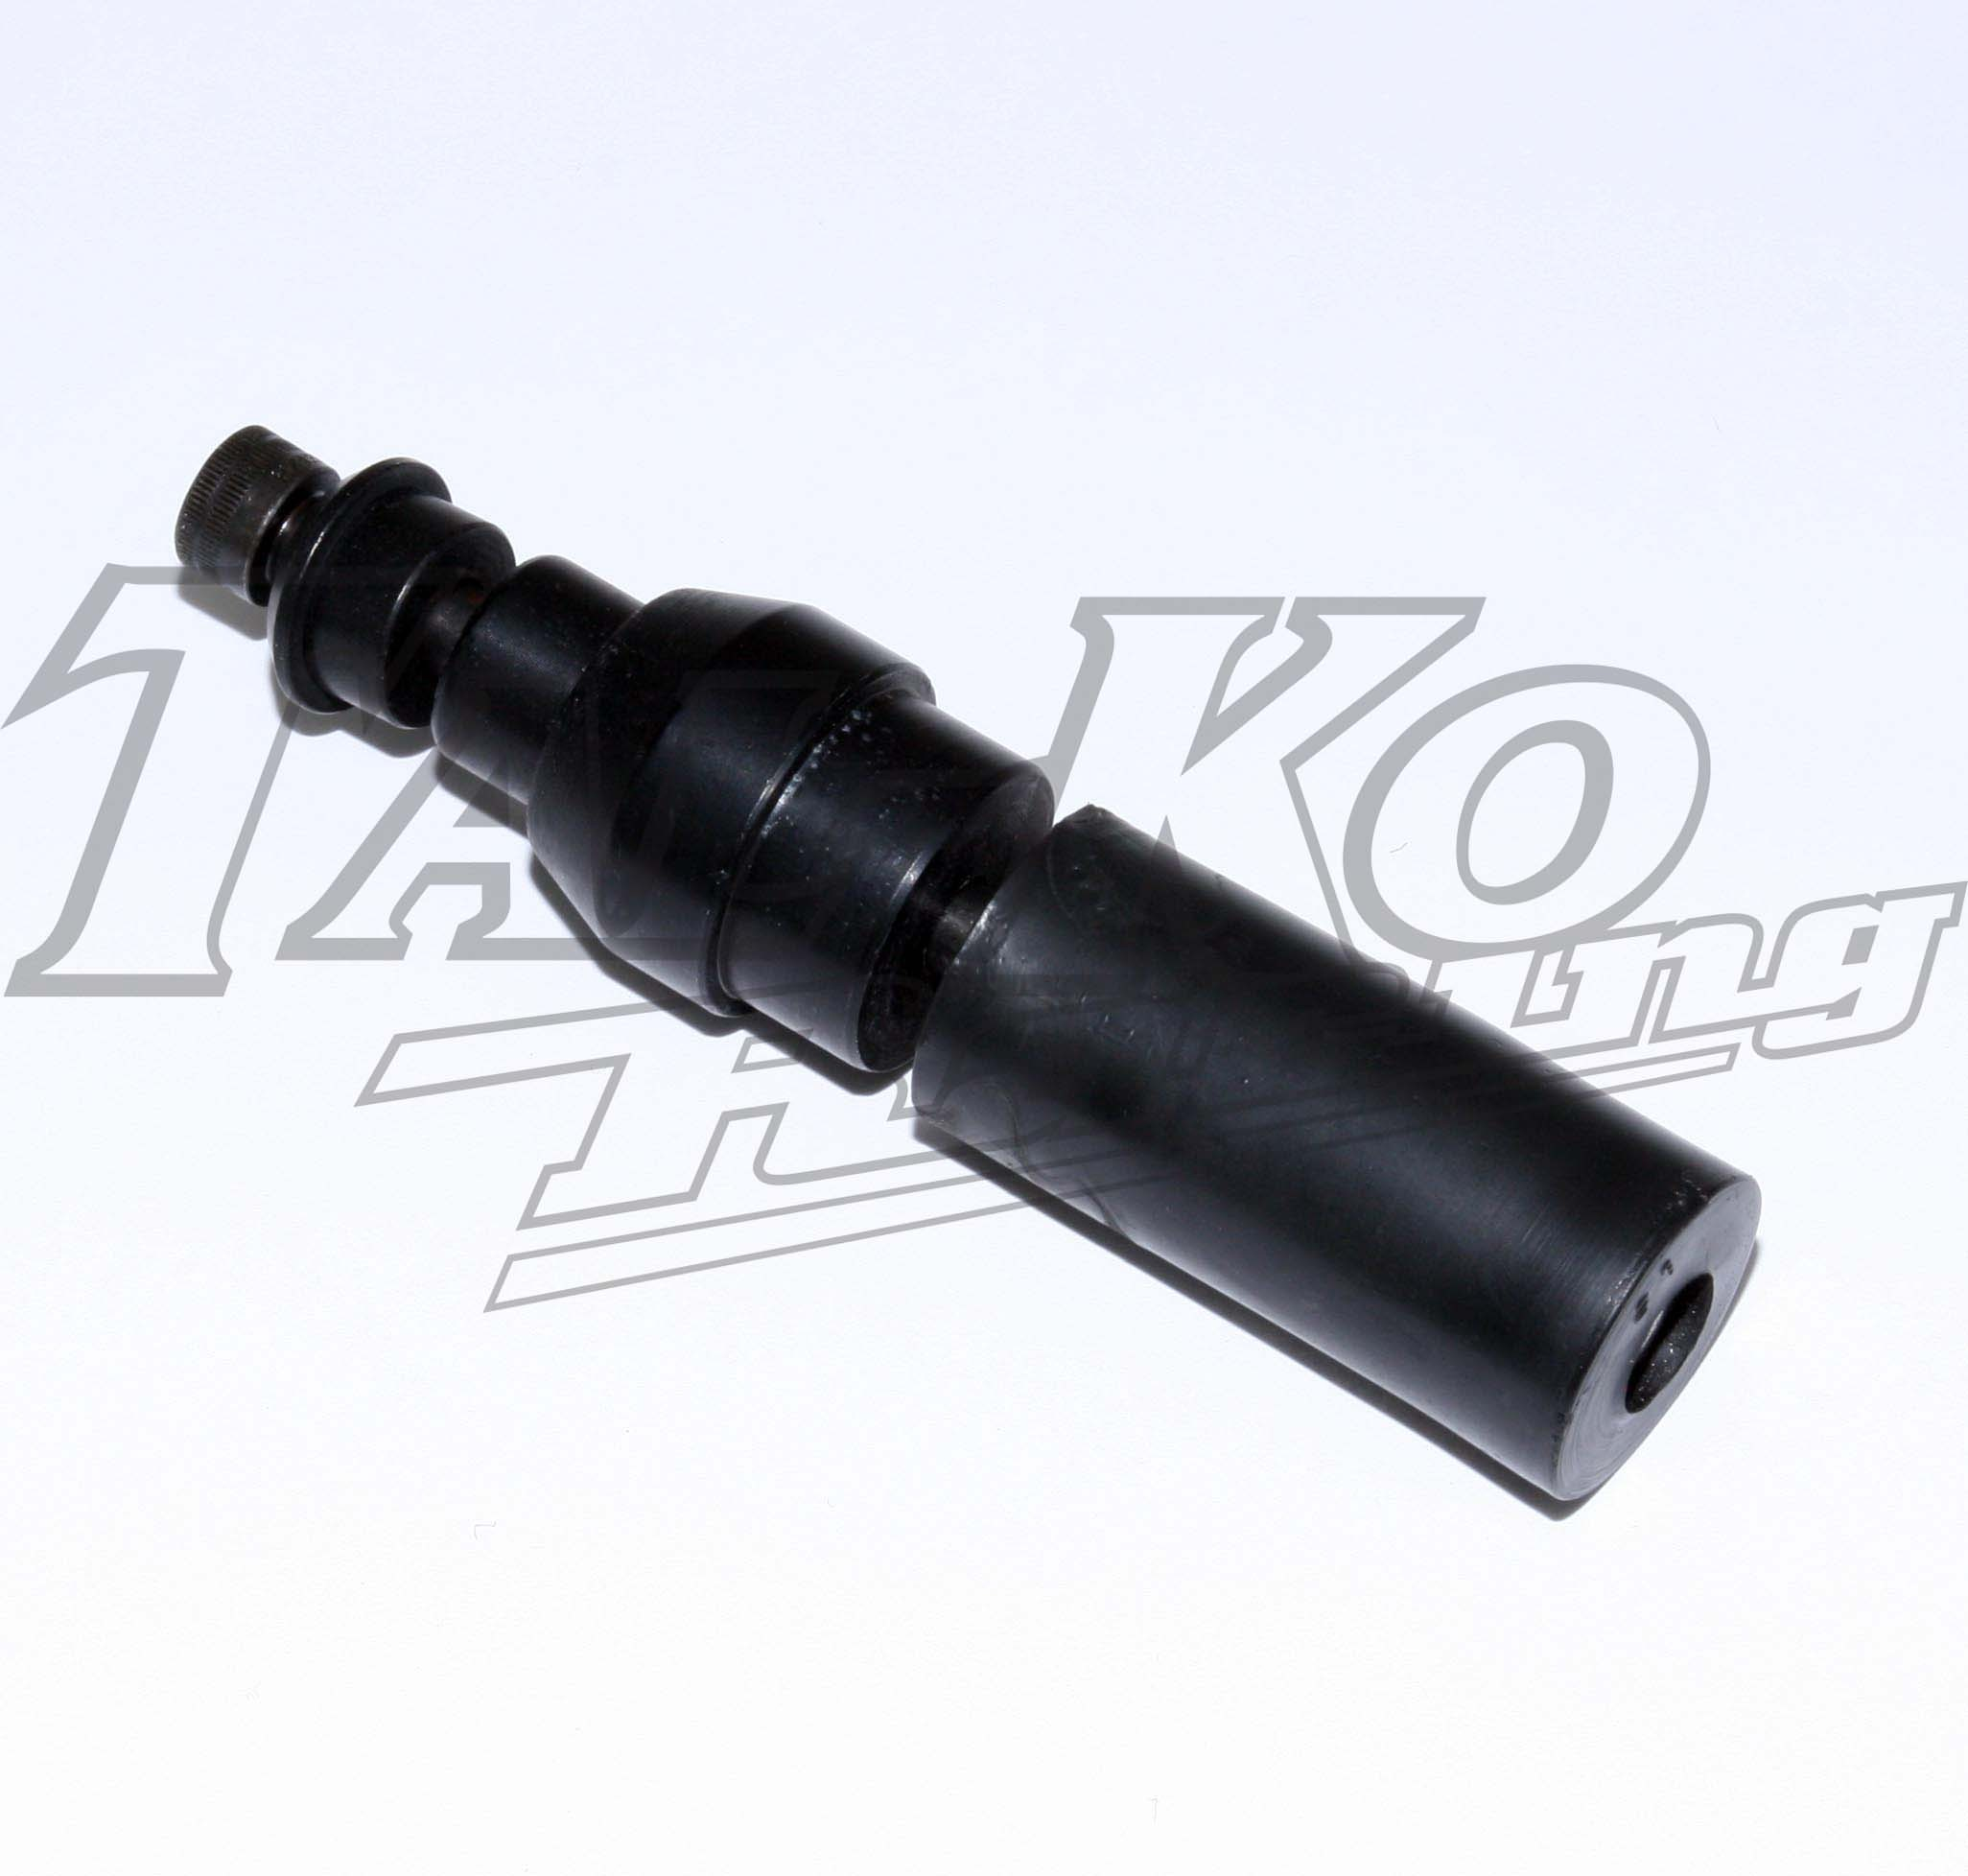 CRG REAR BUMPER BOLT ASSY 32MM BLACK